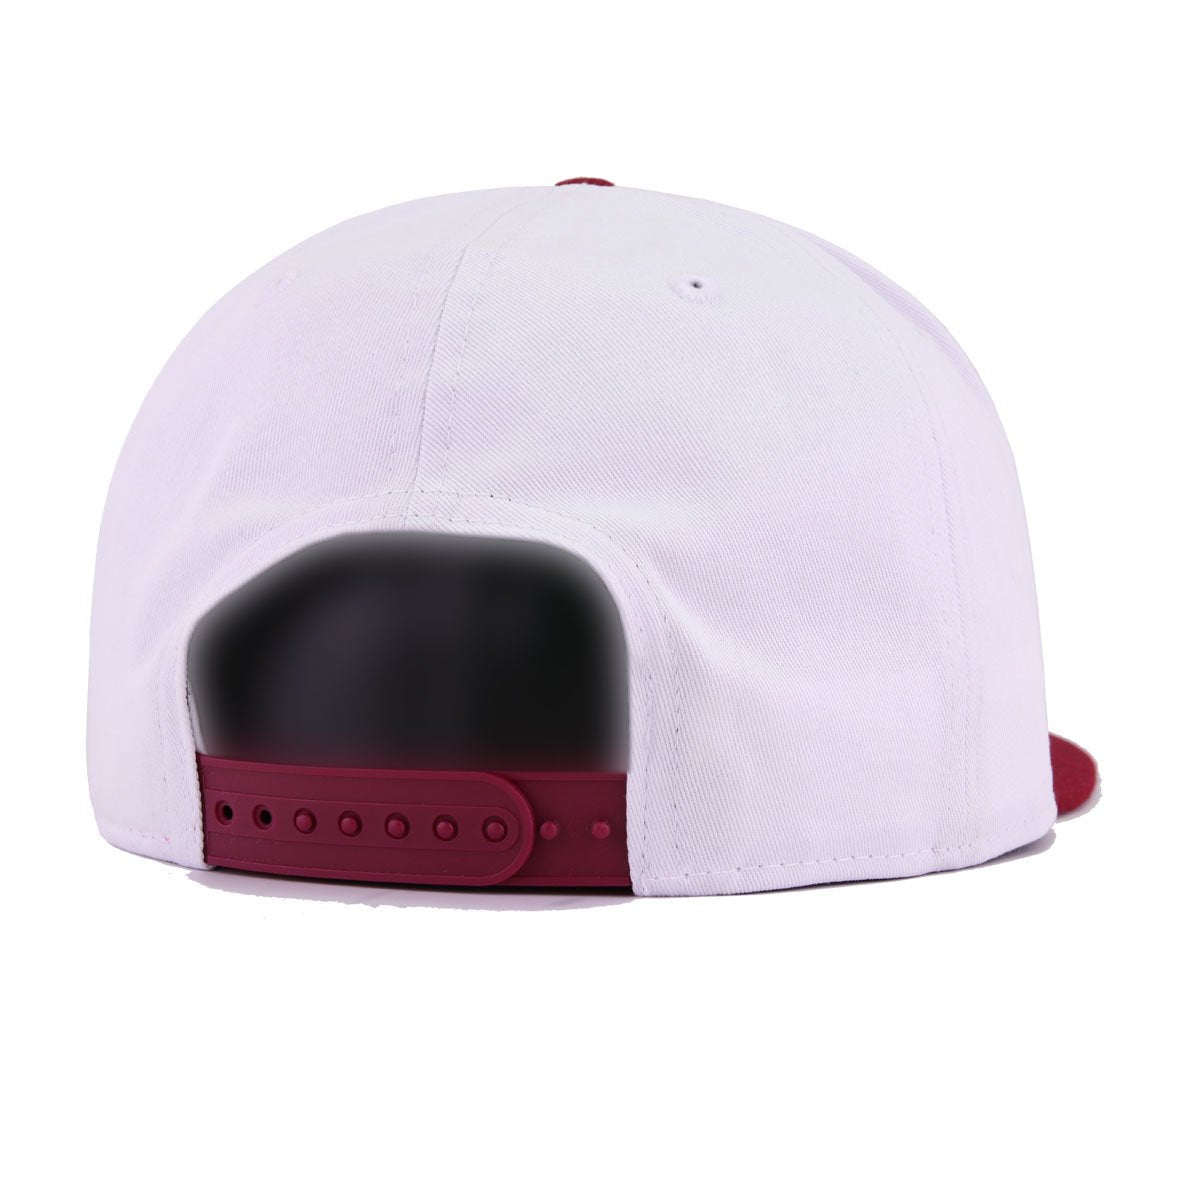 Denver Nuggets White Twill Cardinal Red New Era 9Fifty Snapback